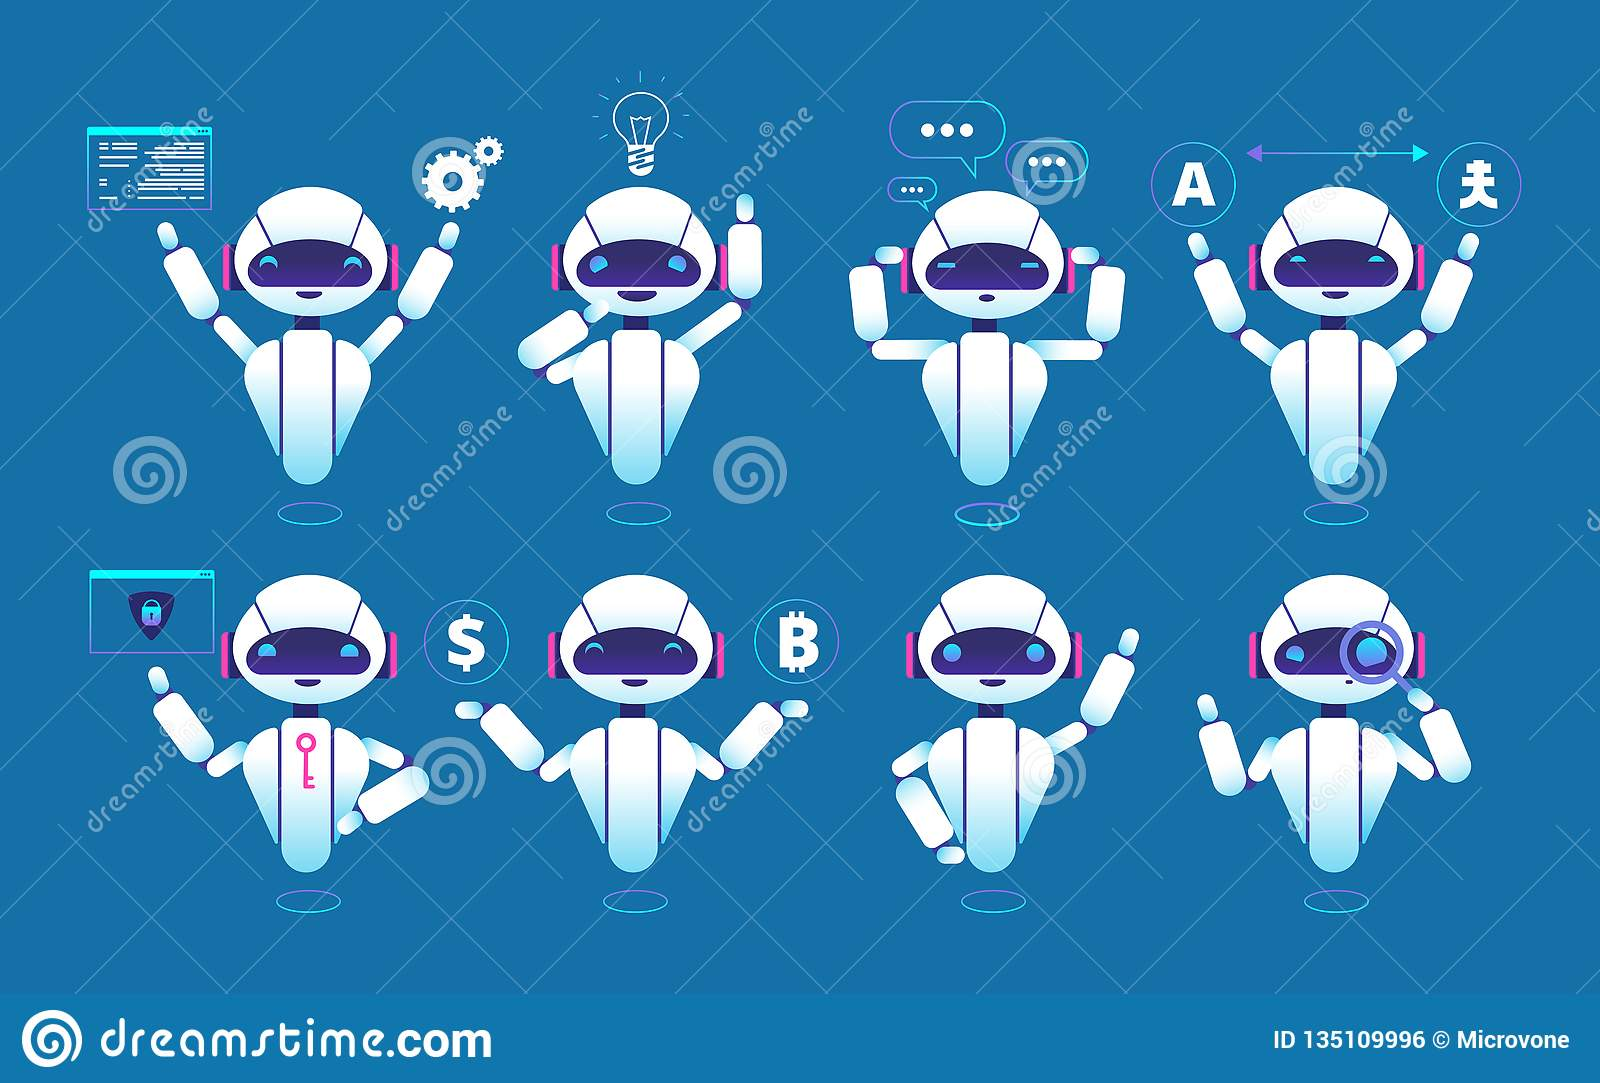 Chatbot character. Cute robot online chat robot in different poses. Chatterbot vector isolated set